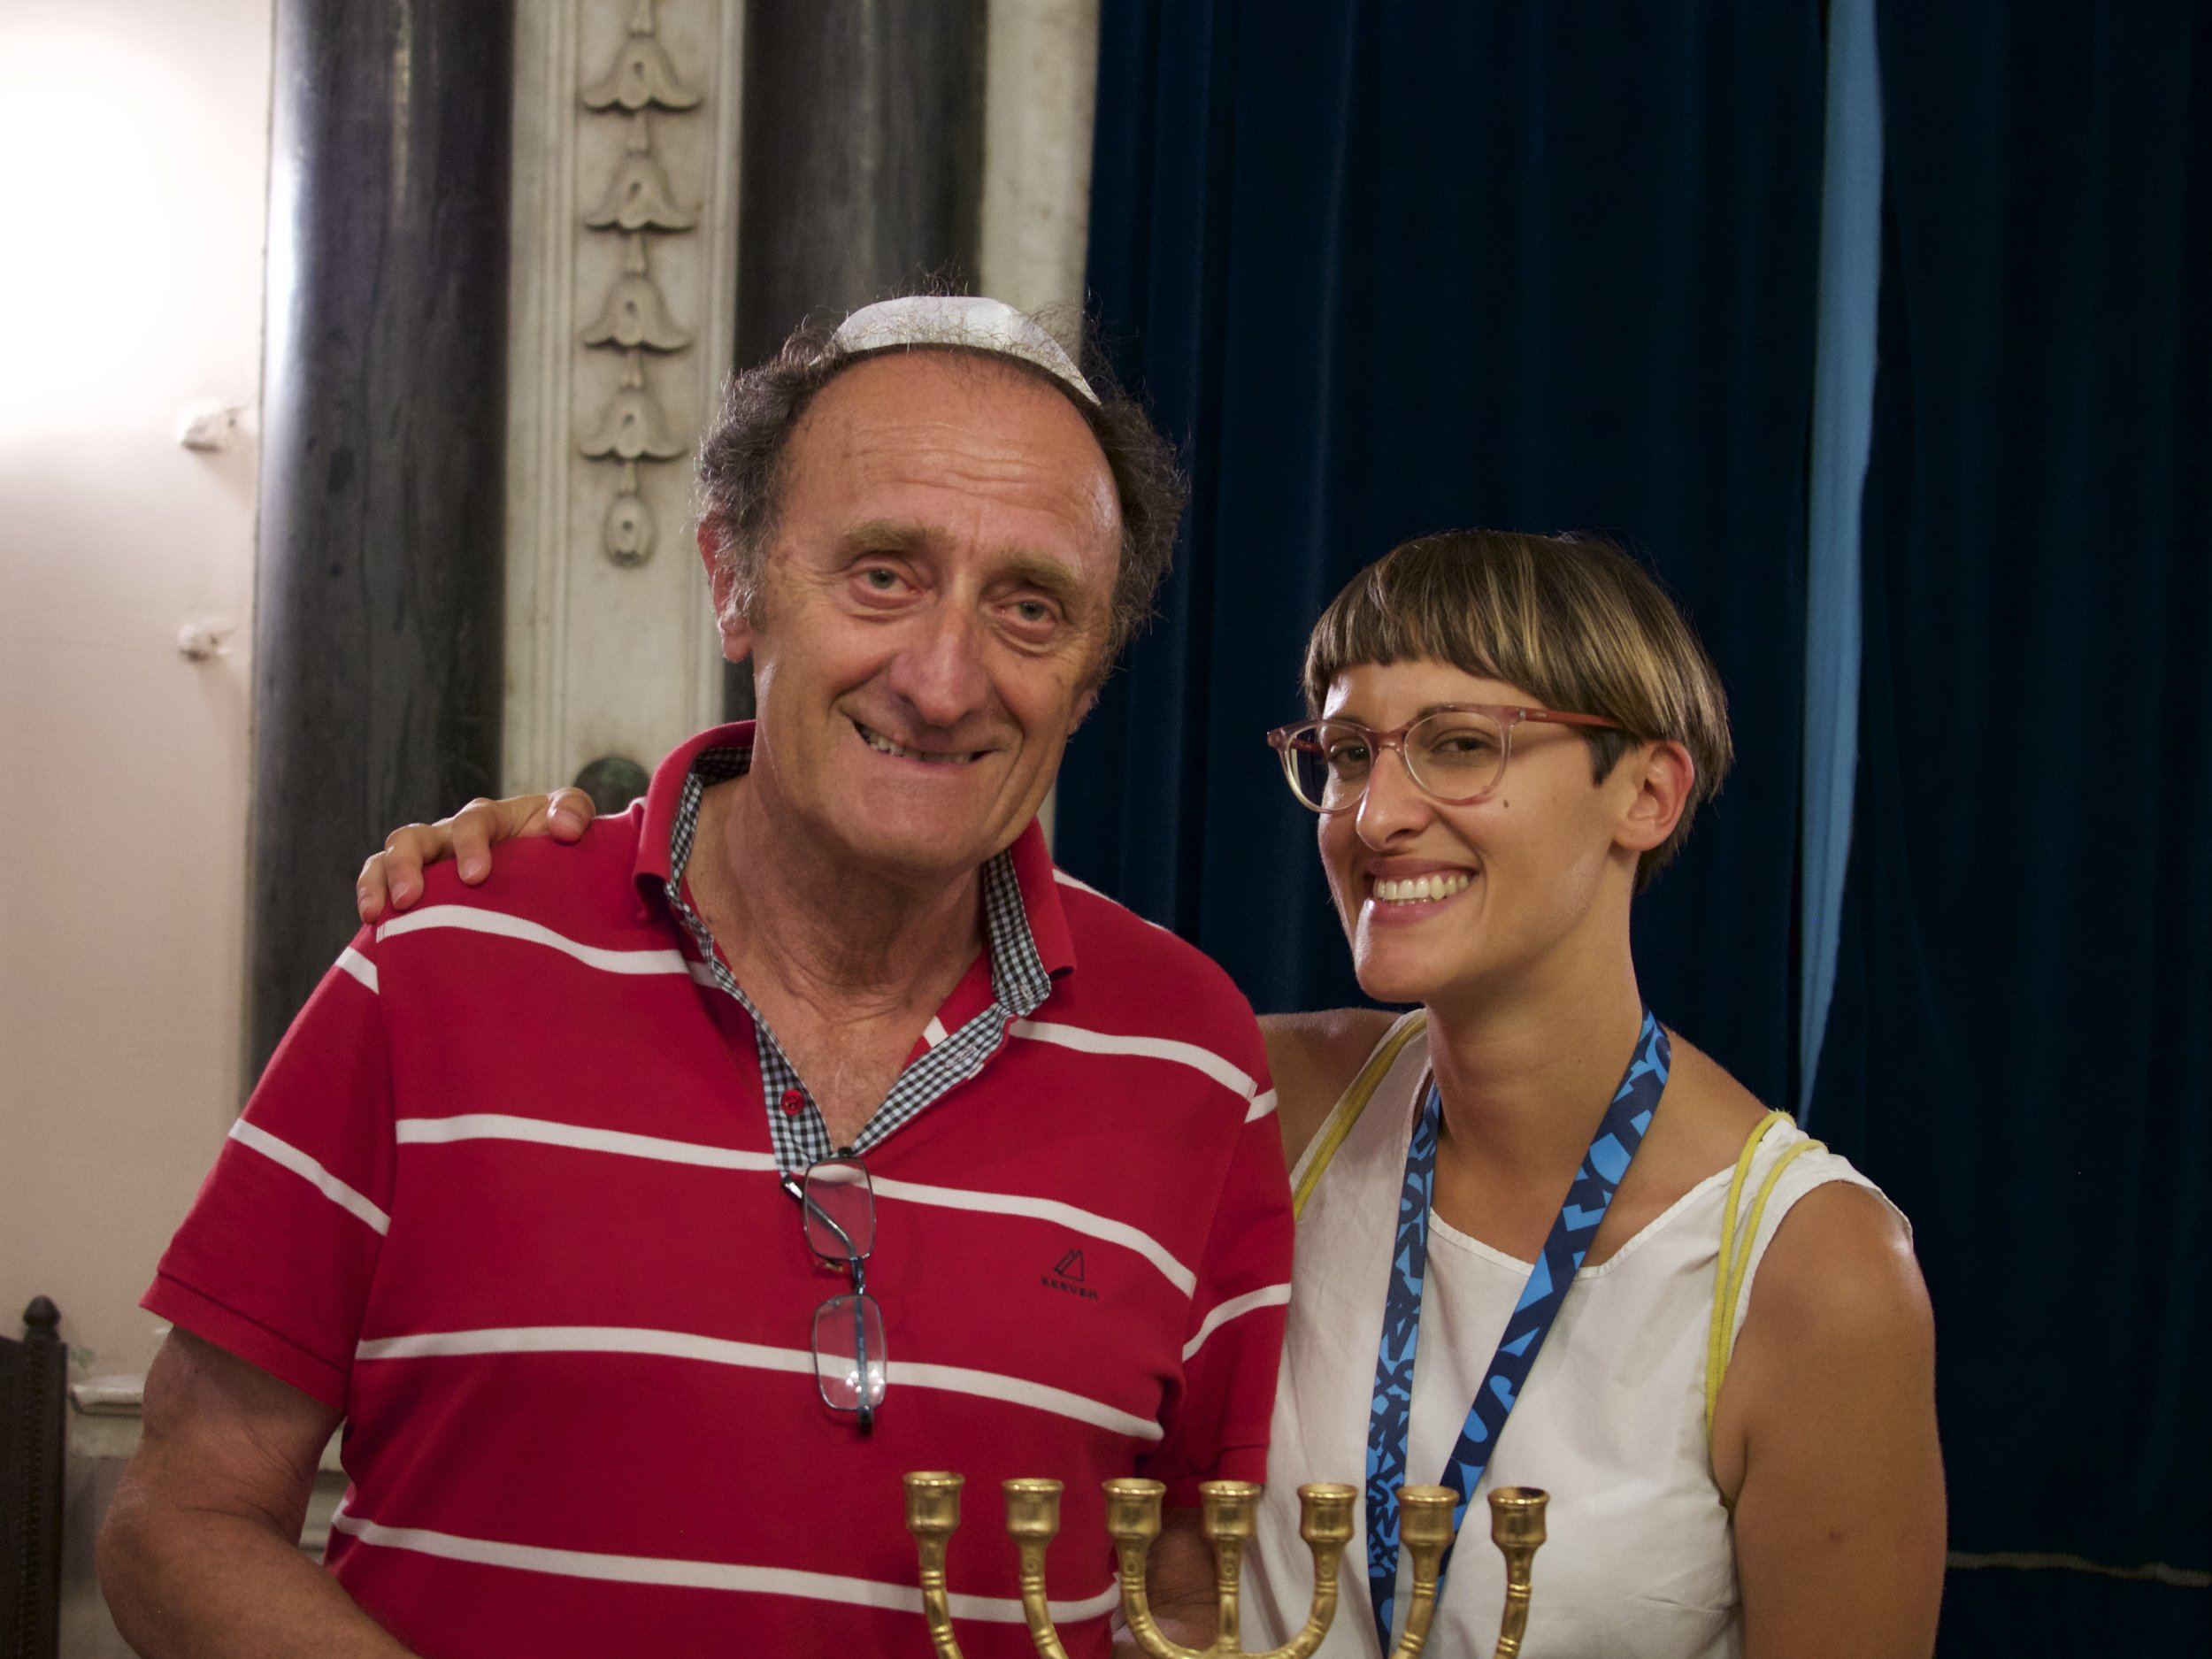 My dad and I at the Split synagogue